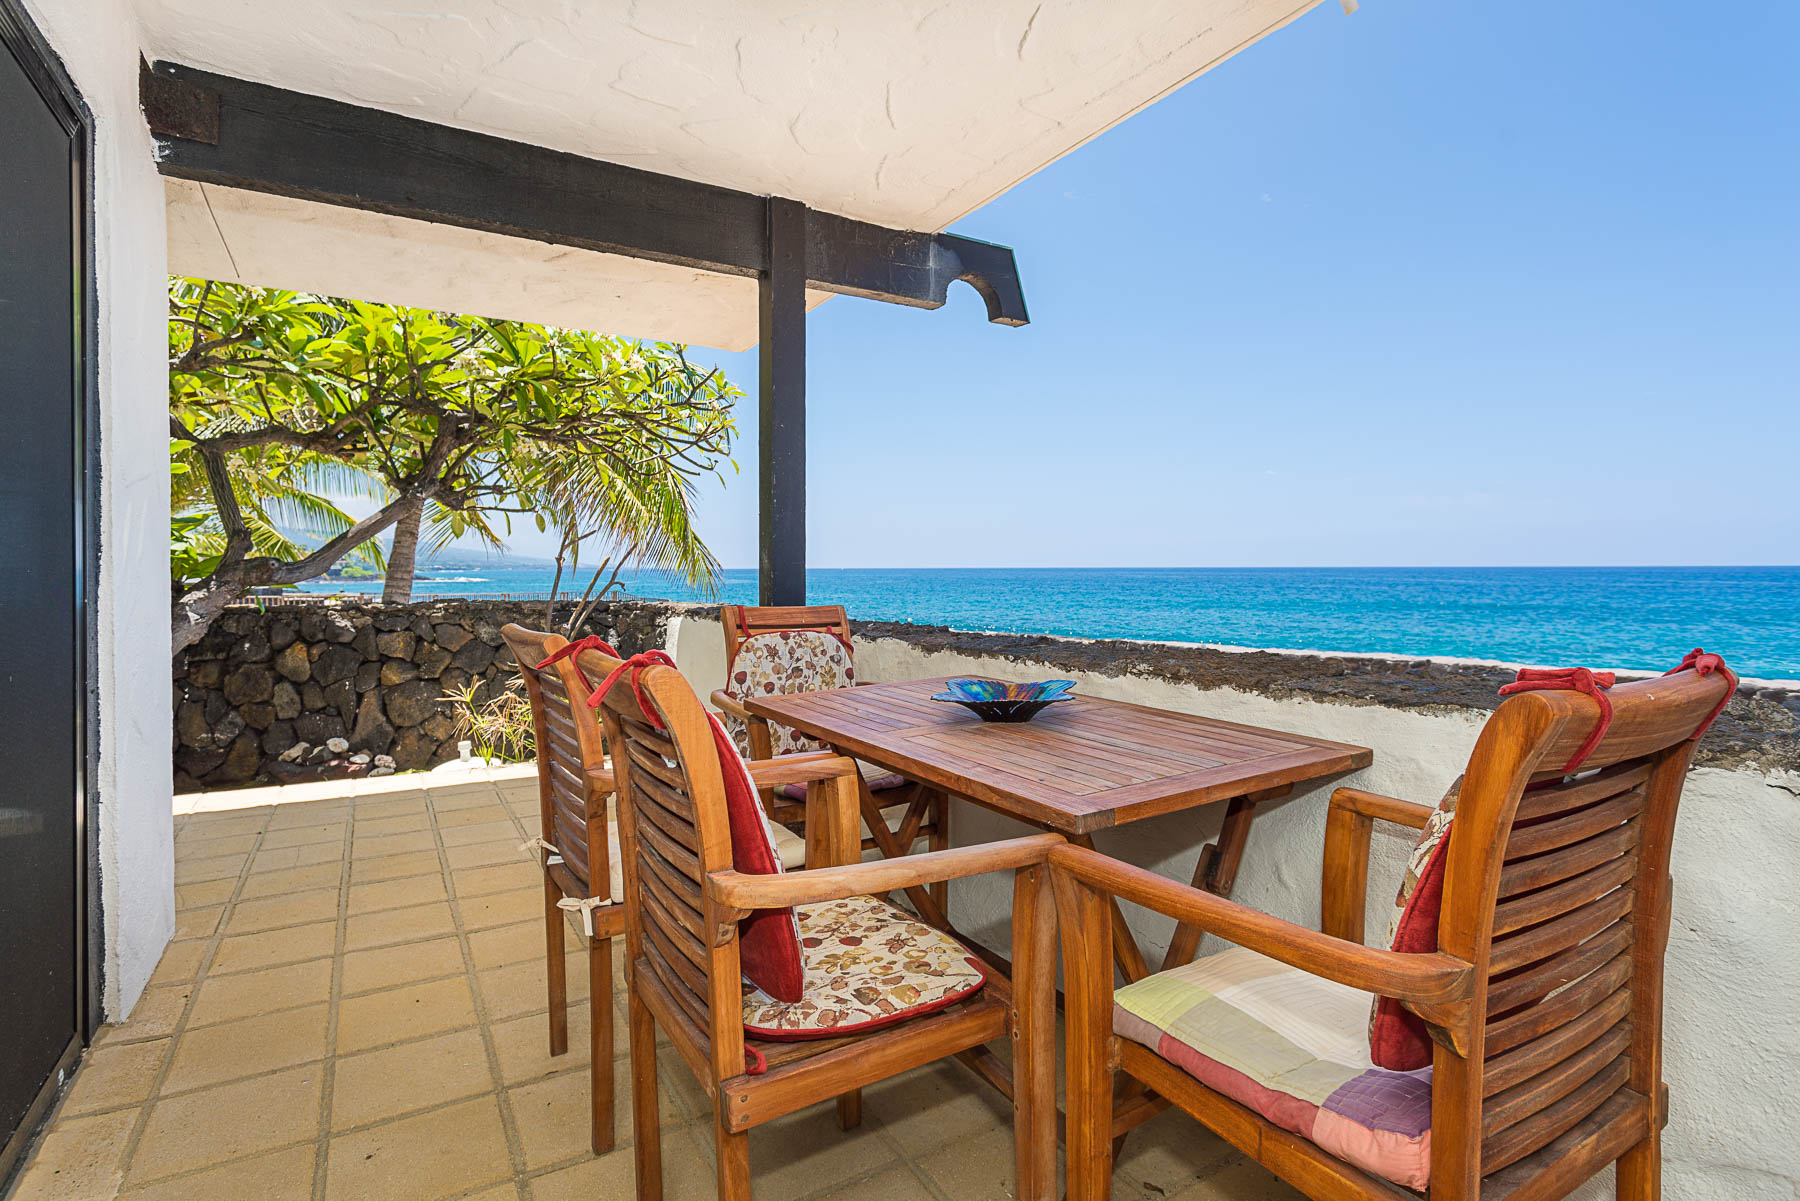 Imagine your morning Kona coffee with this view!